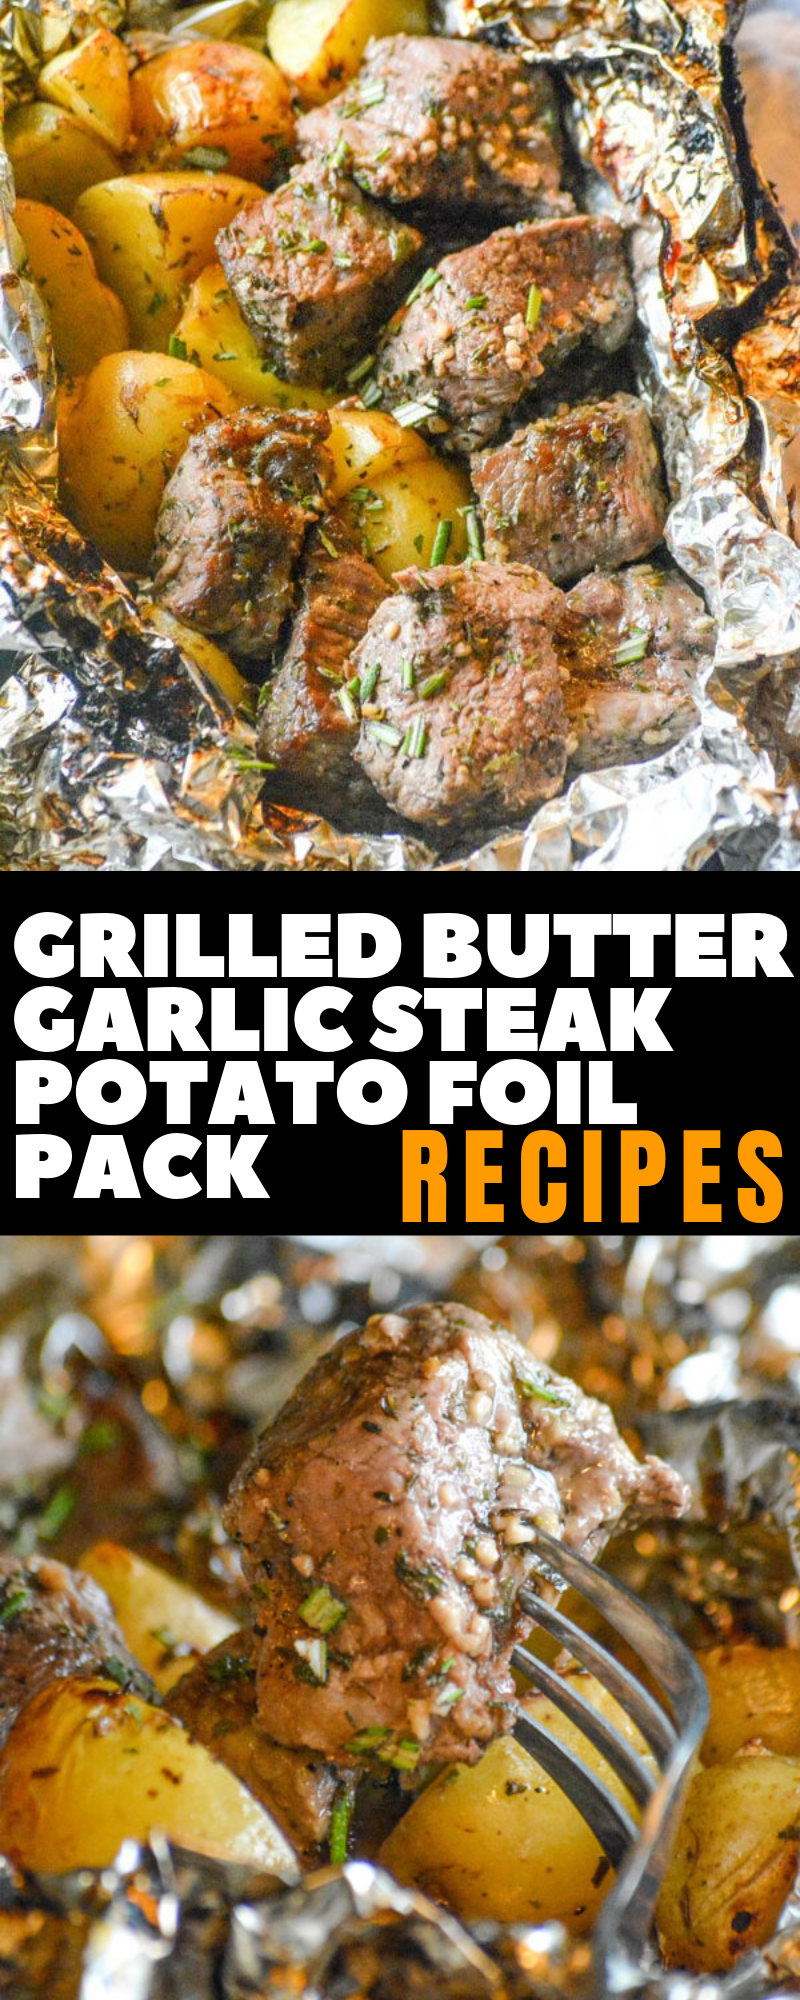 Easy Grilled Butter Garlic Steak Potato Foil Pack Dinner Recipes #dinnerrecipes #grilledrecipes #dinnerrecipesforfamilymaindishes